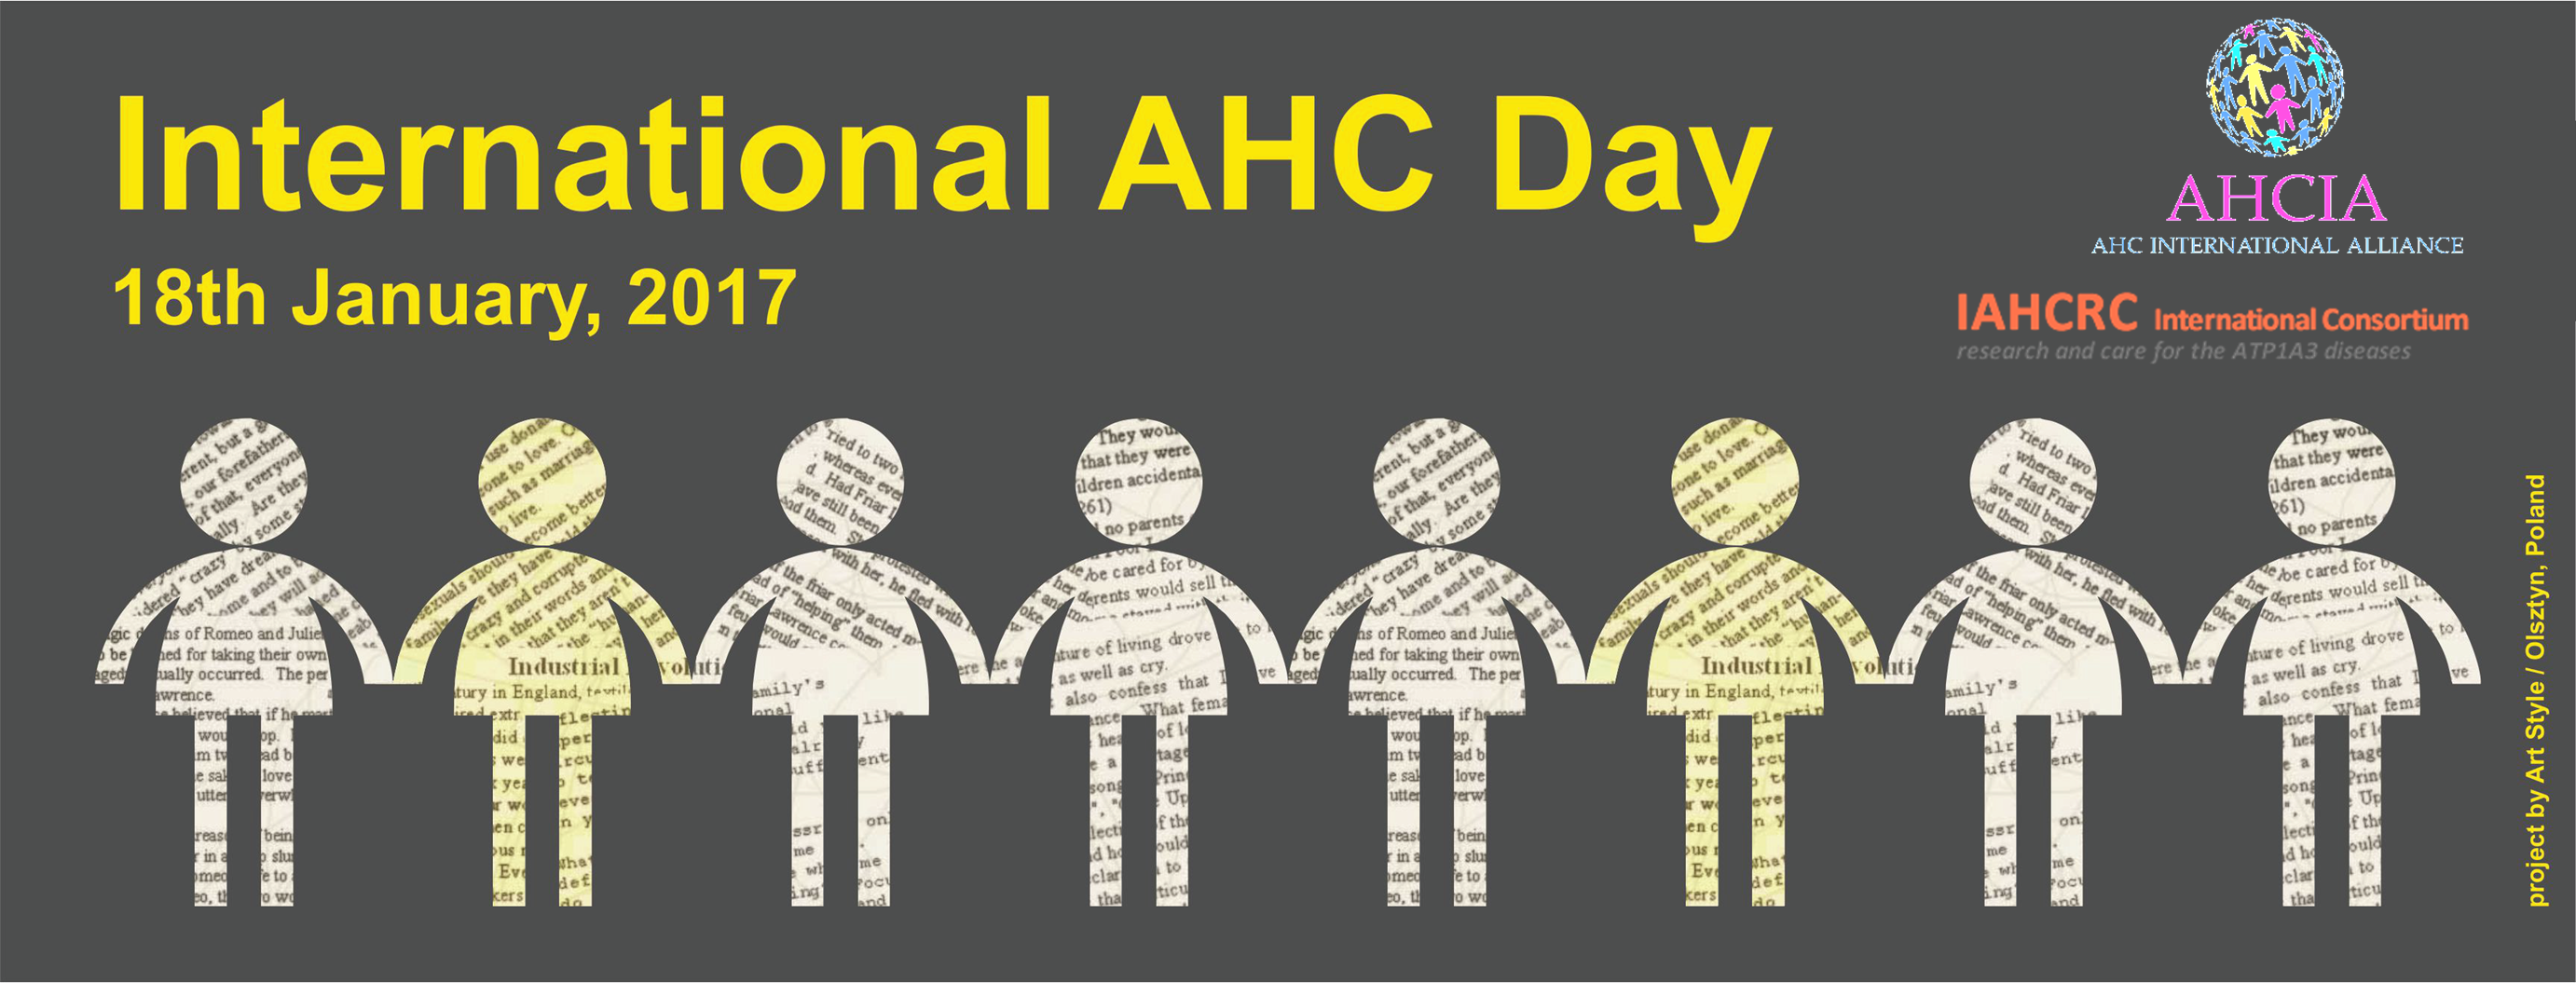 International AHC DAY (18 February 2017)